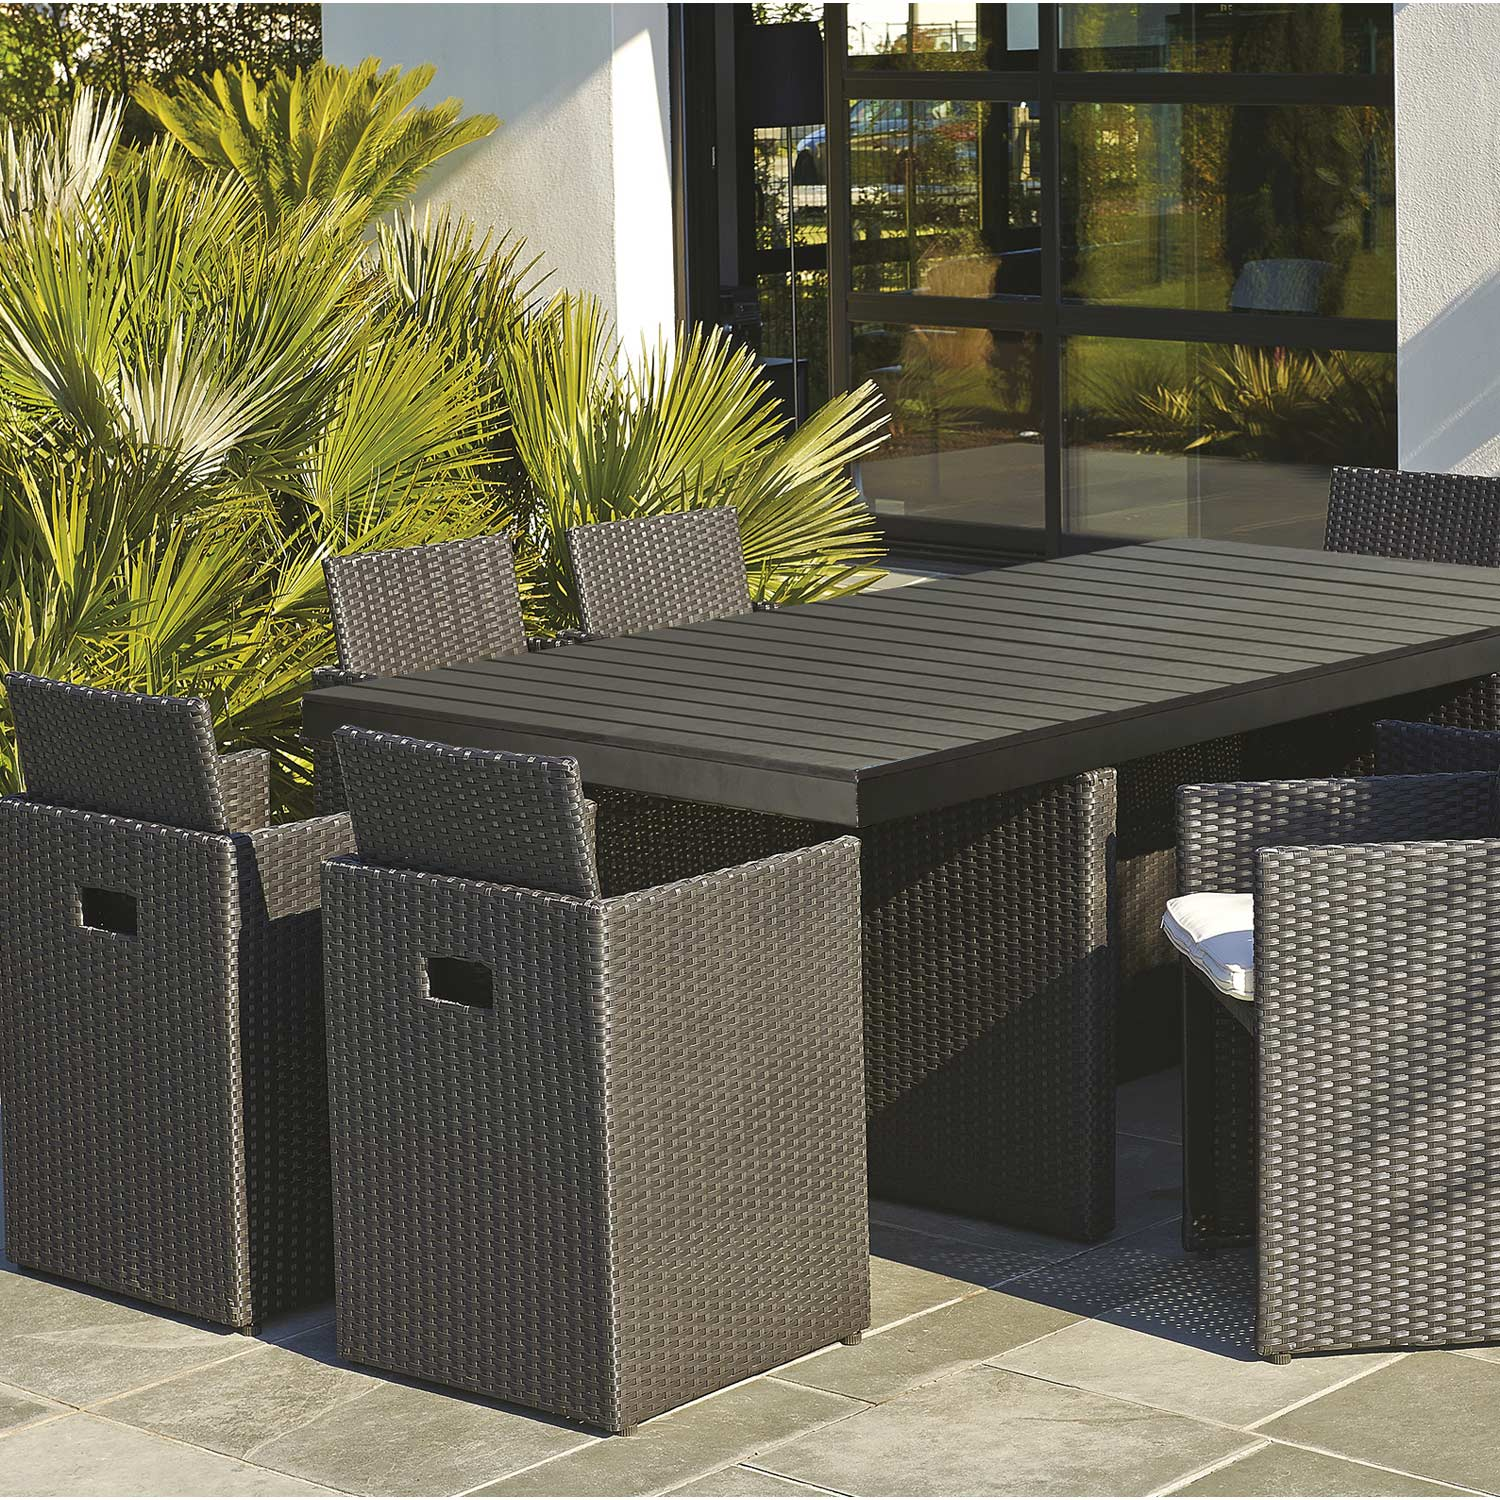 Salon de jardin encastrable r sine tress e noir 1 table for Salon de jardin resine solde